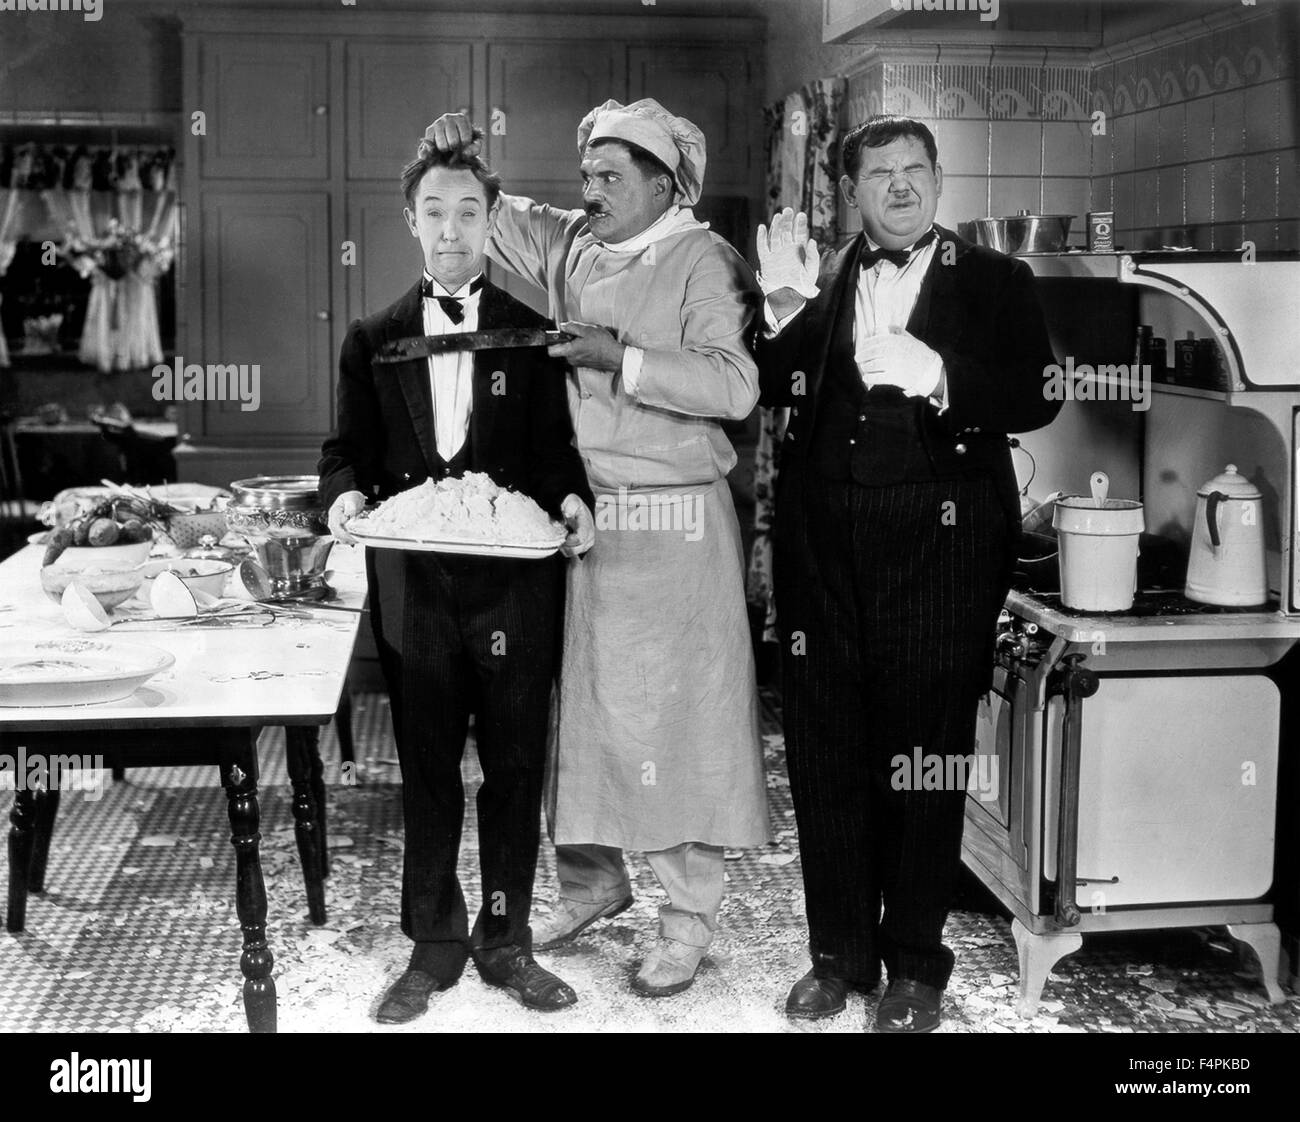 Stan Laurel and Oliver Hardy / From Soup to Nuts / 1928 directed by Edgar Kennedy  [Metro-Goldwyn-Mayer Pictures] - Stock Image